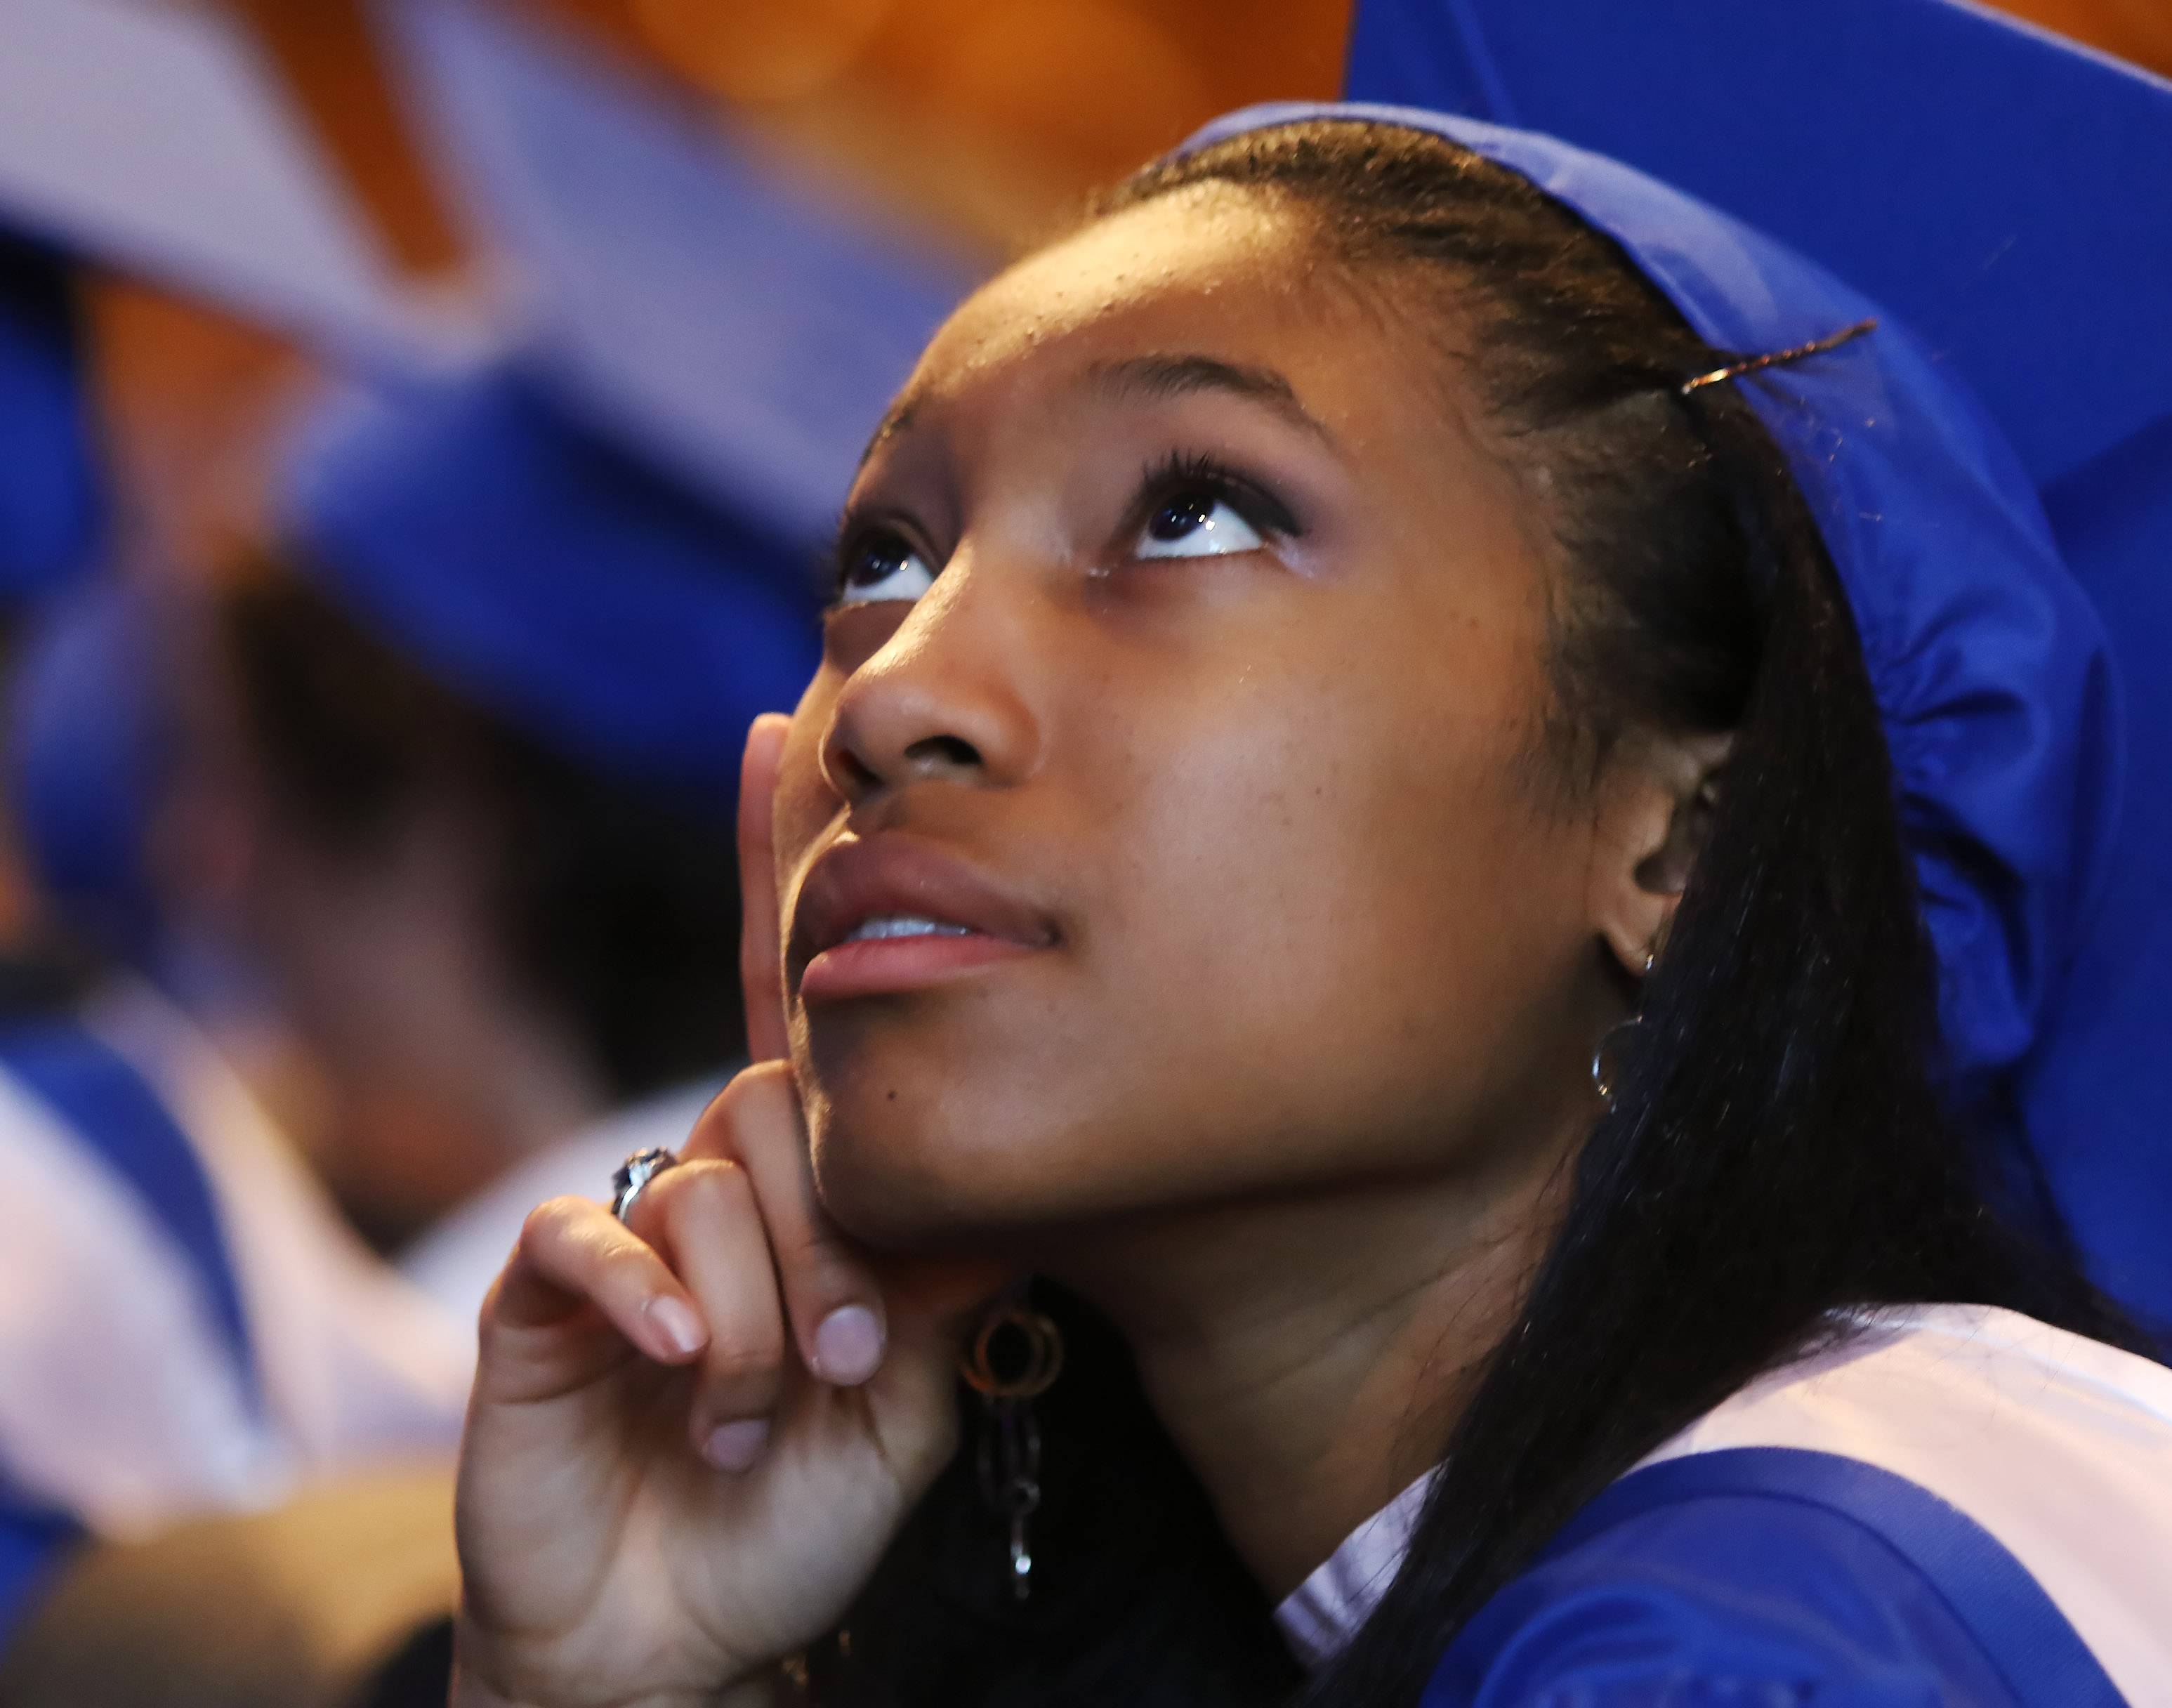 Chloe Jefferson looks up at the speakers during the Hoffman Estates High School graduation Thursday at Willow Creek Church in South Barrington. The graduating class of 470 participated in the commencement exercises.